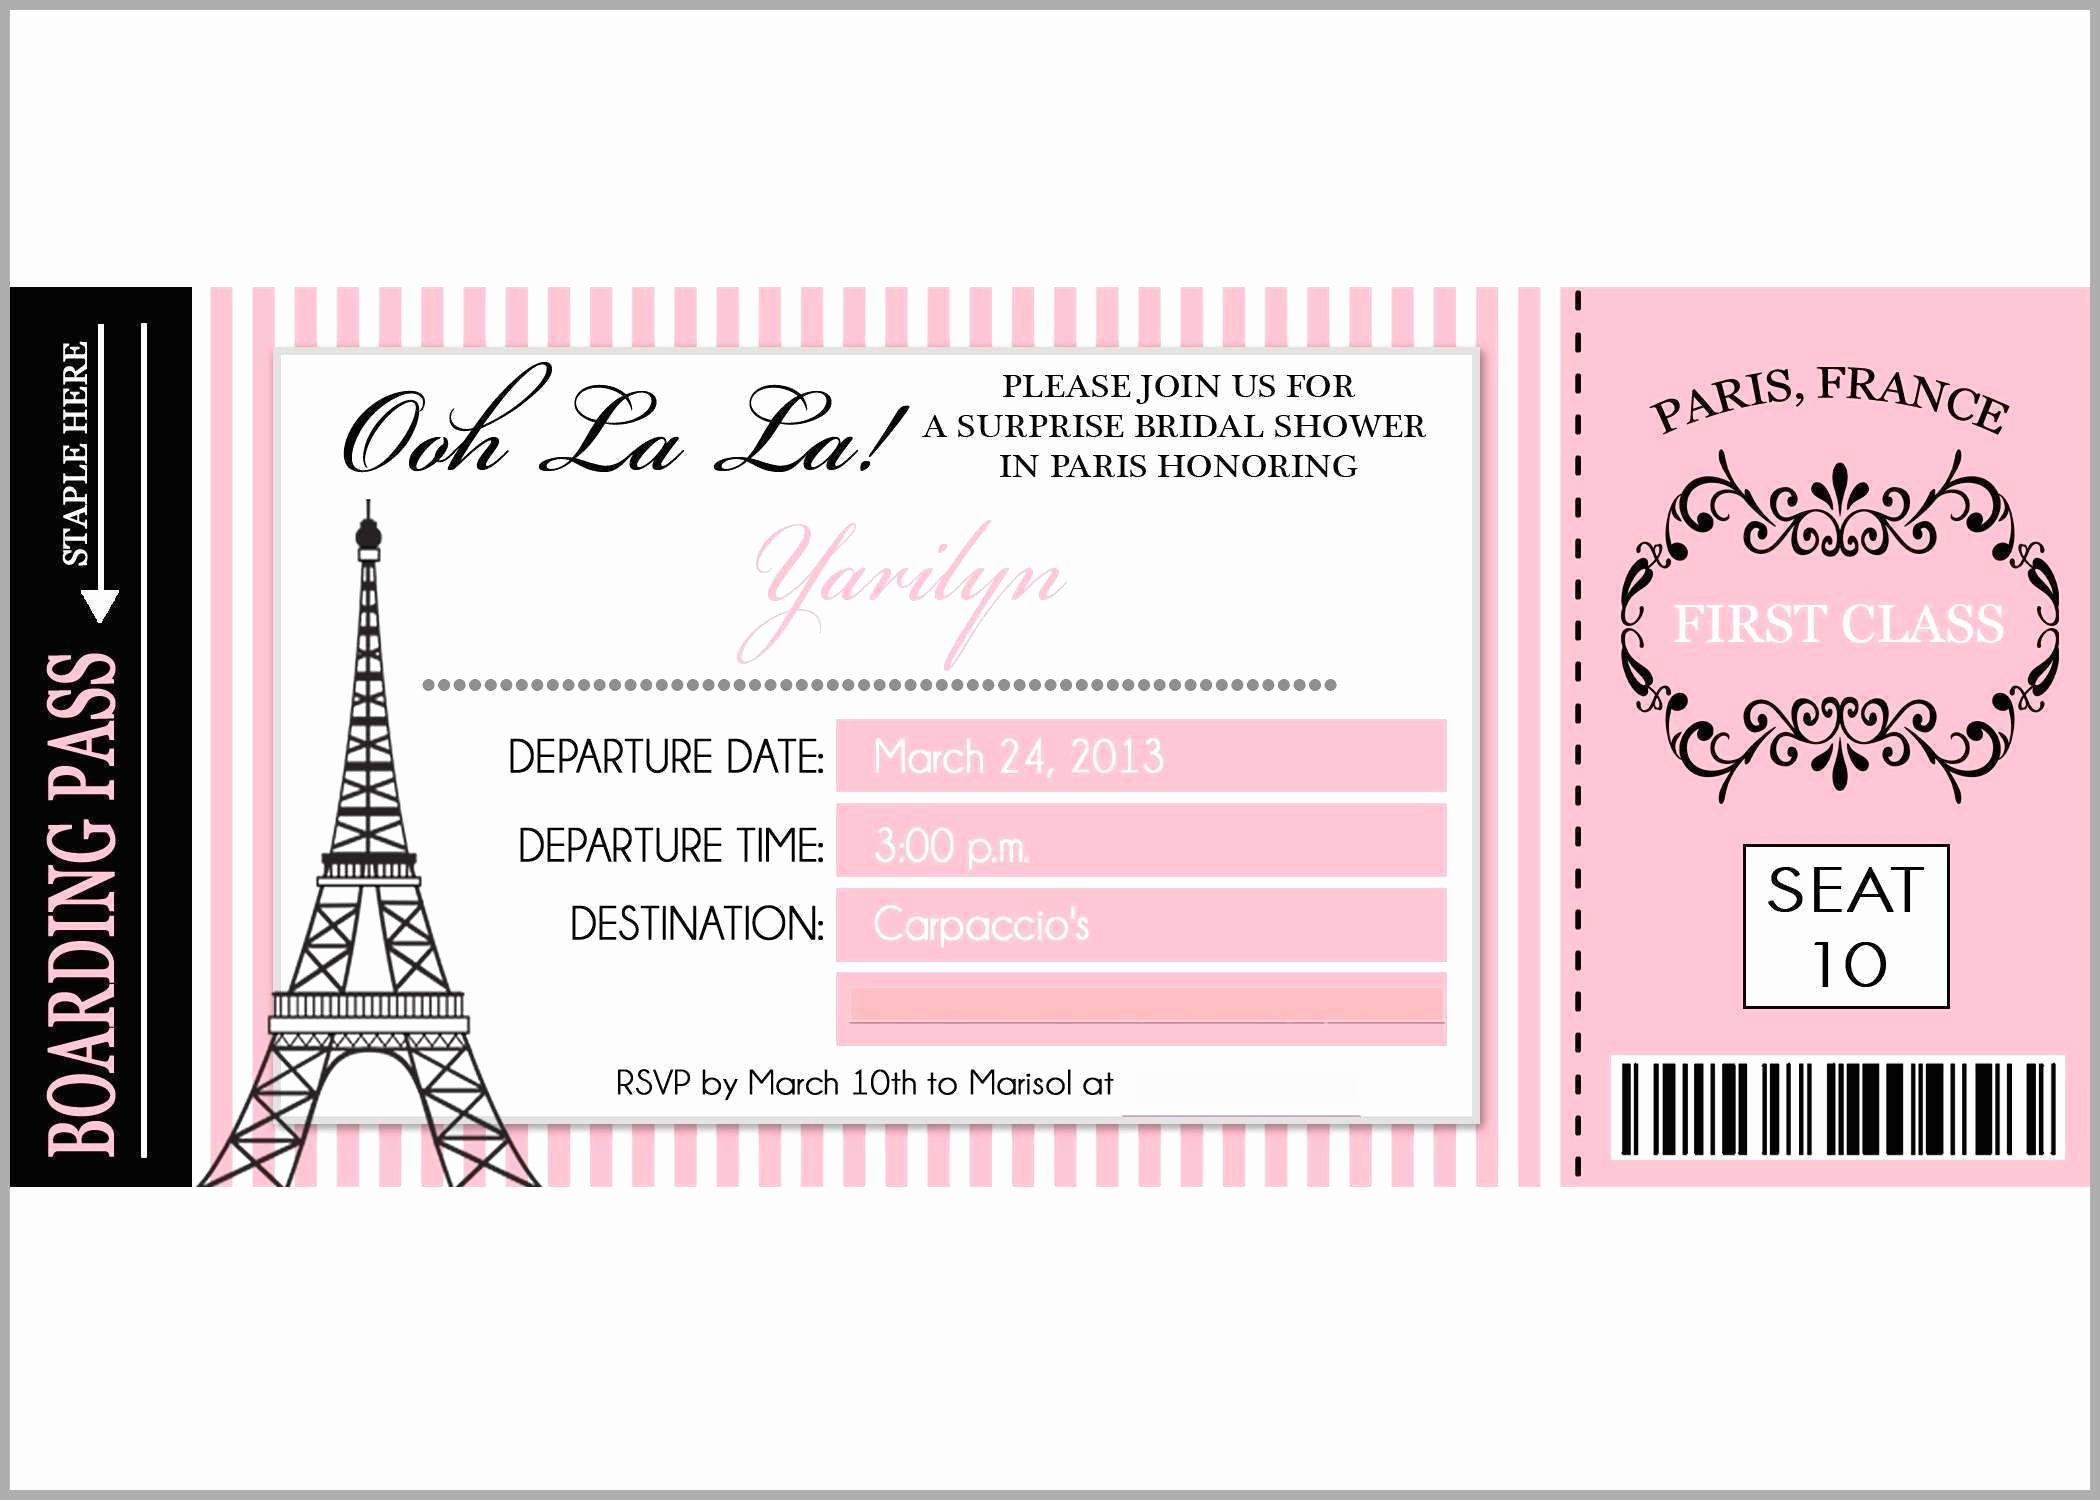 Paris Passport Invitation Template Best Of Paris Passport Invitation Template Fabulous Paris Party